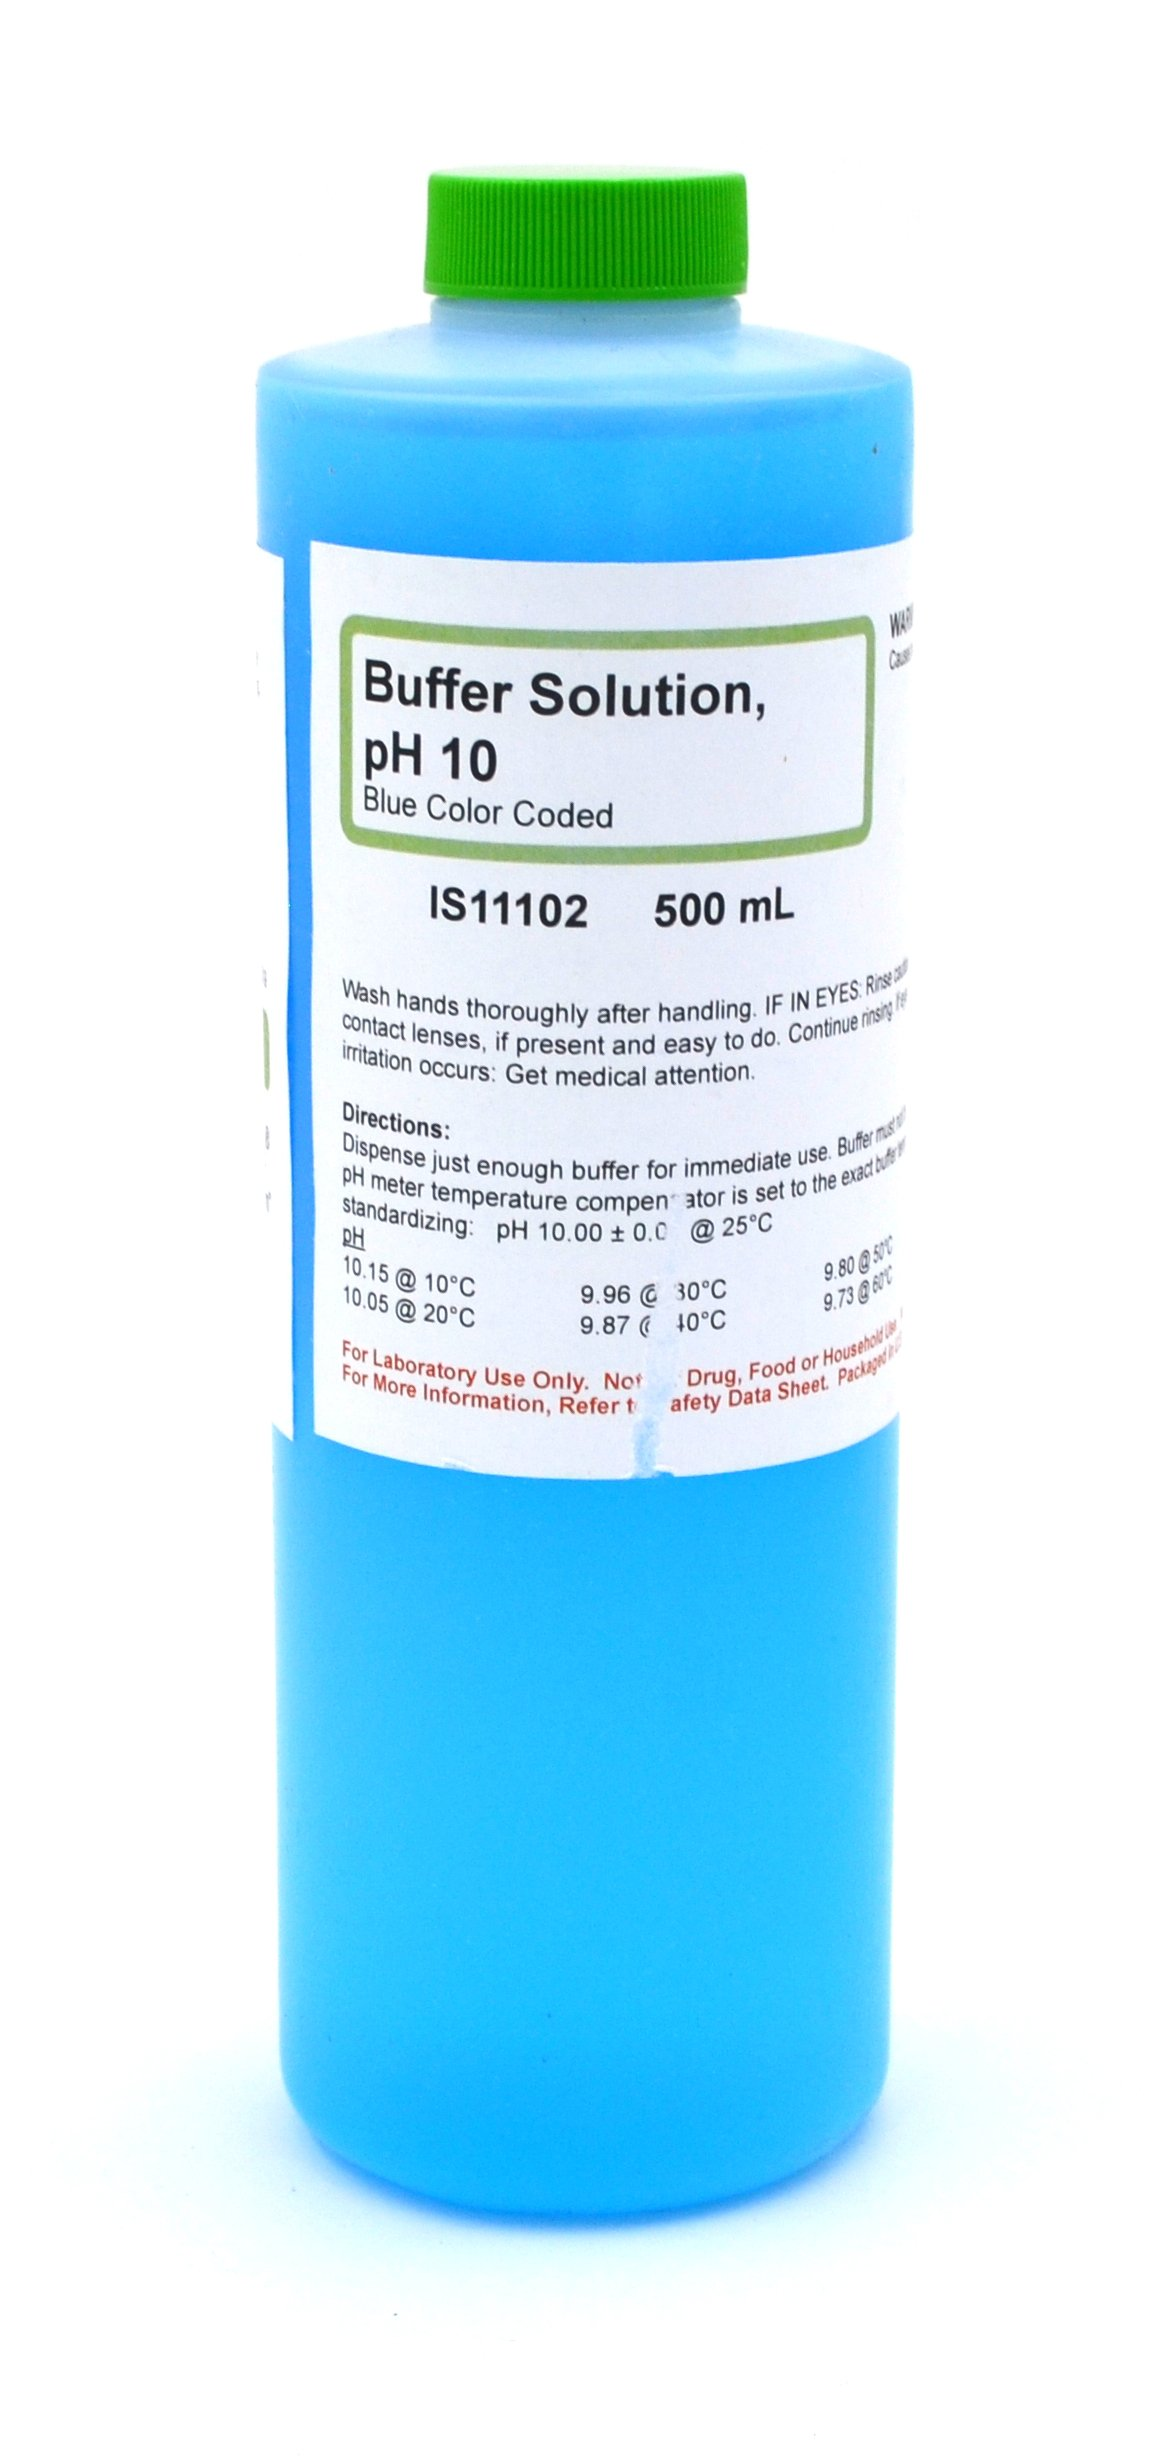 Standard Buffer Solution, pH 10, 500mL - The Curated Chemical Collection